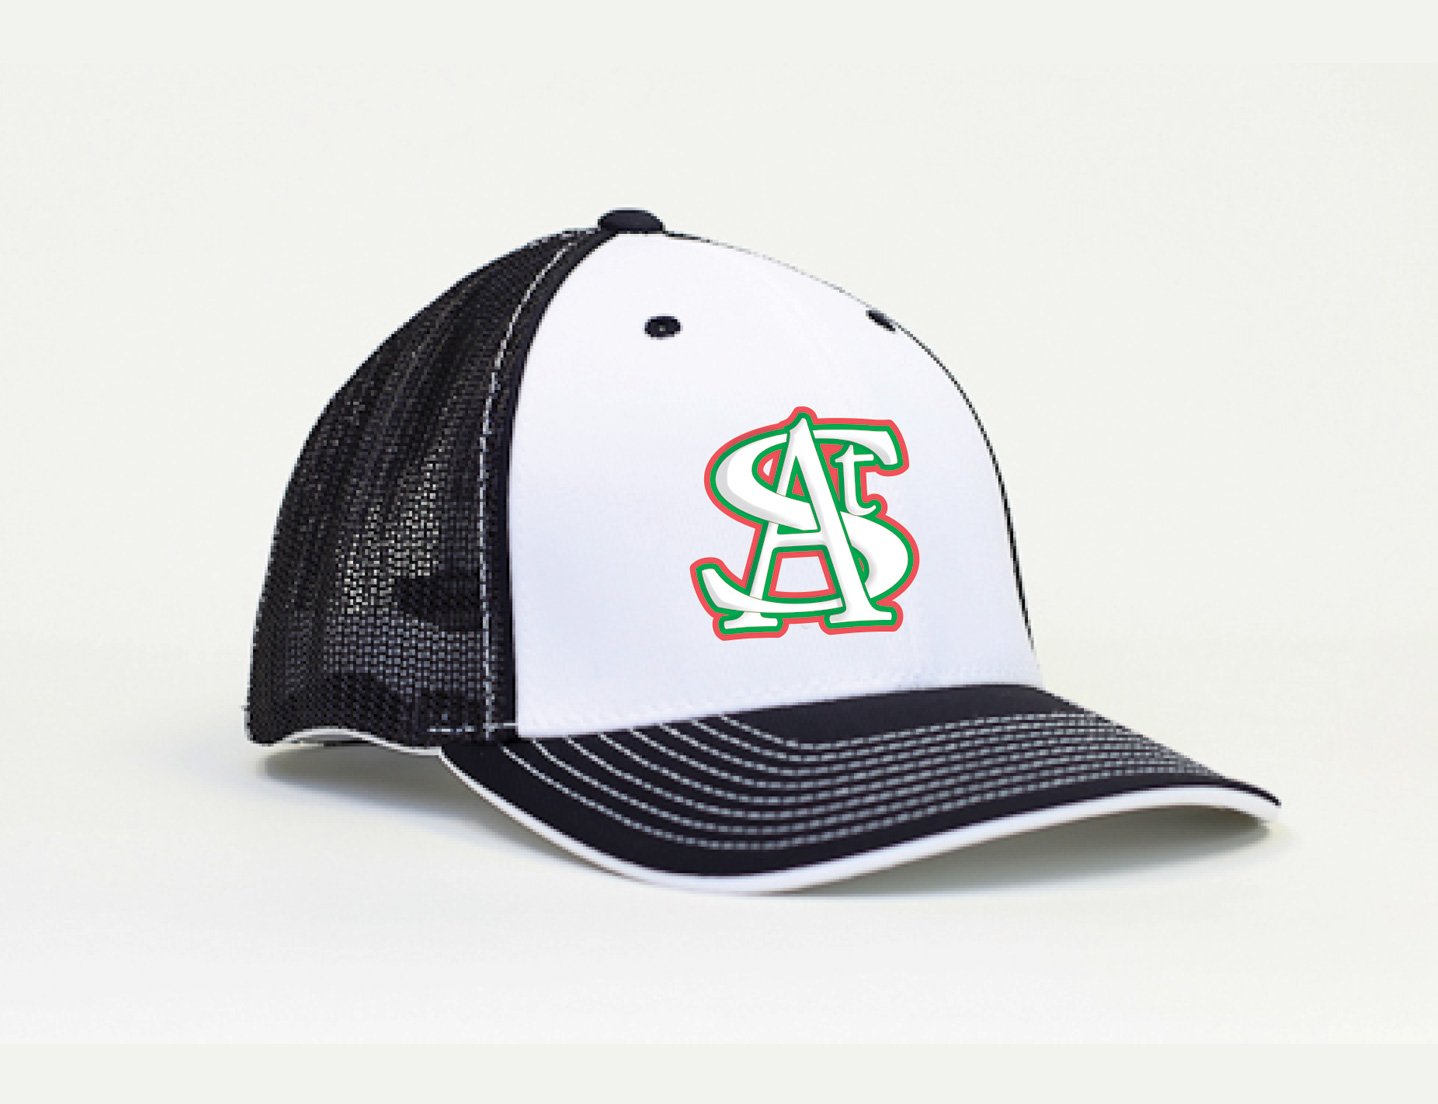 Saint-Anthony's-3D-Embroidery-Hat.jpg